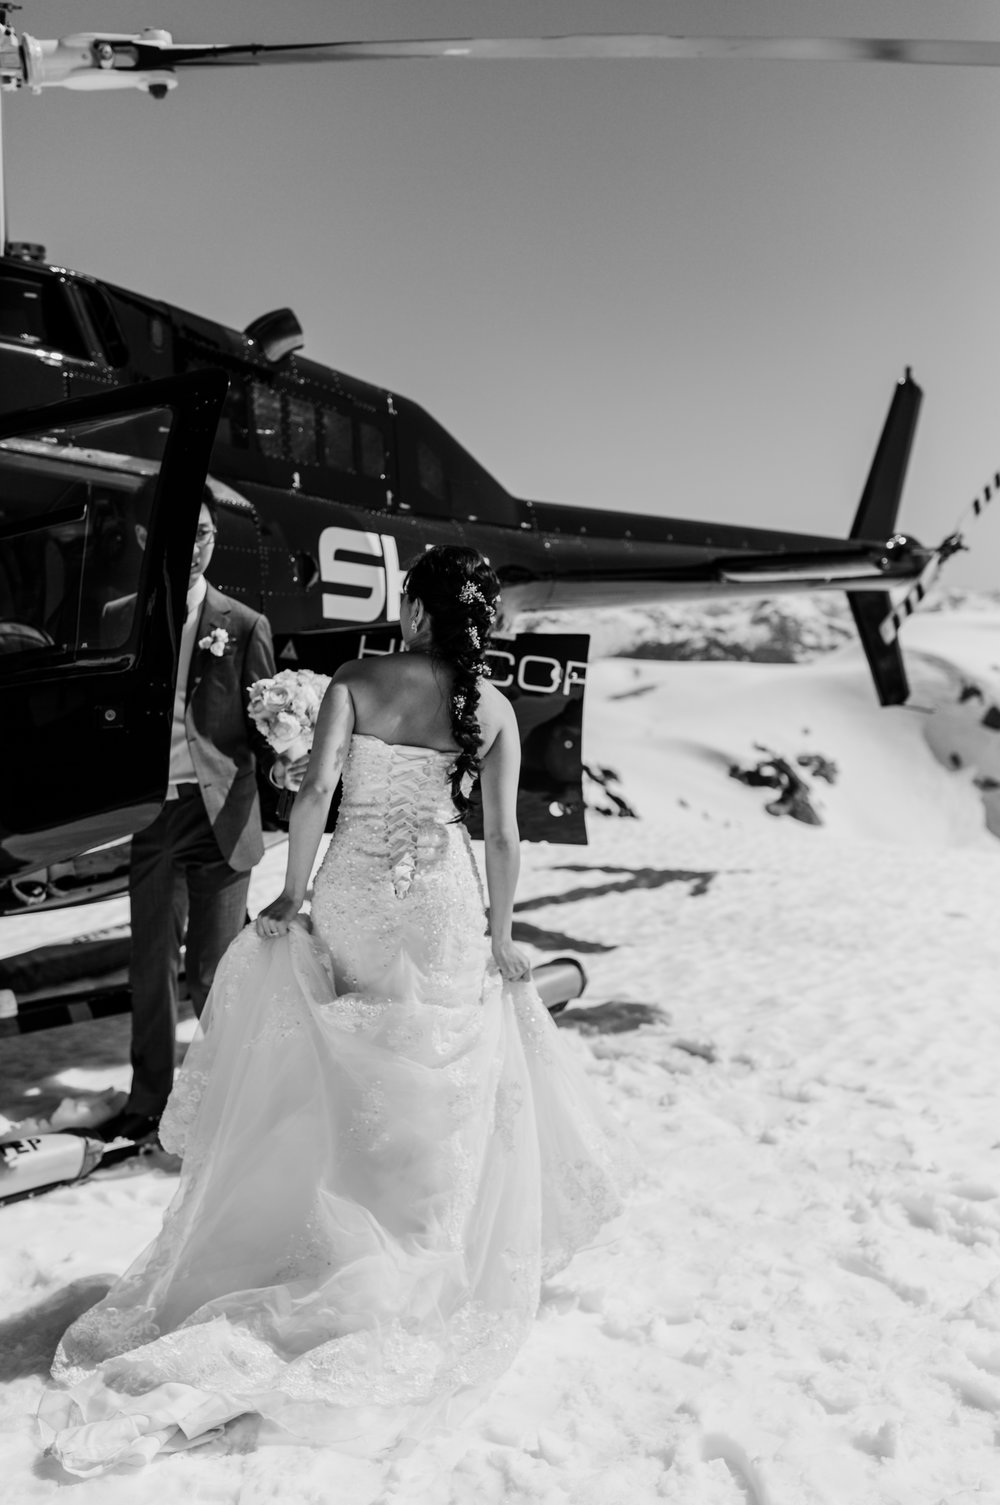 Helicopter Mountaintop Elopement - Sky Helicopters Wedding - Jennifer Picard Photography - Vancouver Wedding Photographer & Videographer - 201.JPG